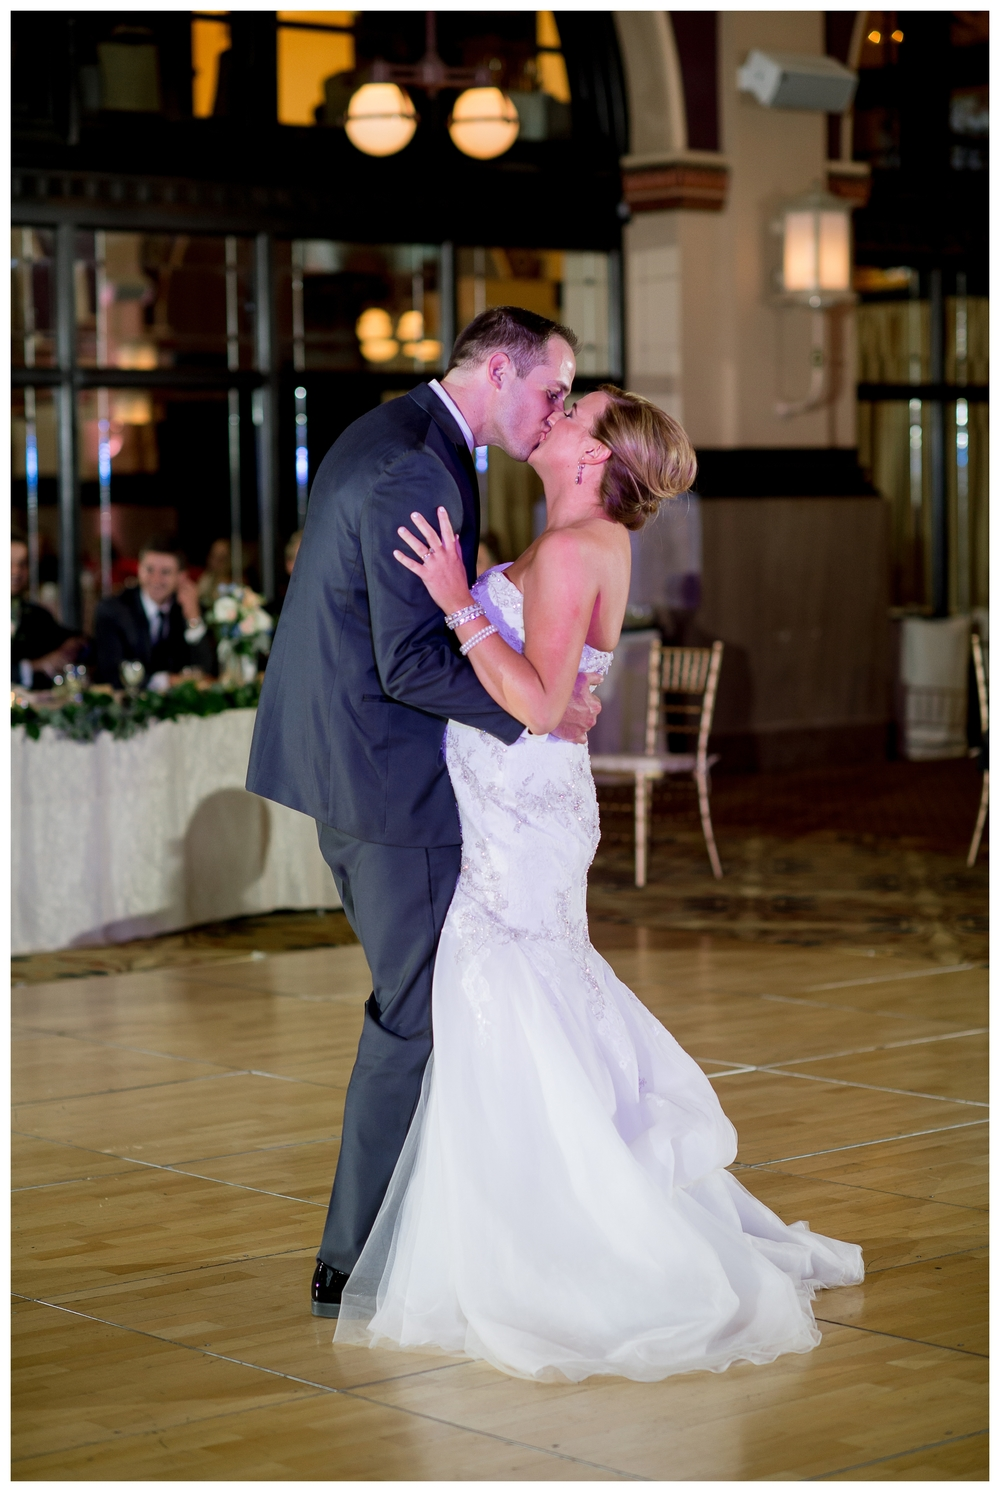 Rebecca_Bridges_Photography_Indianapolis_Wedding_Photographer_4213.jpg